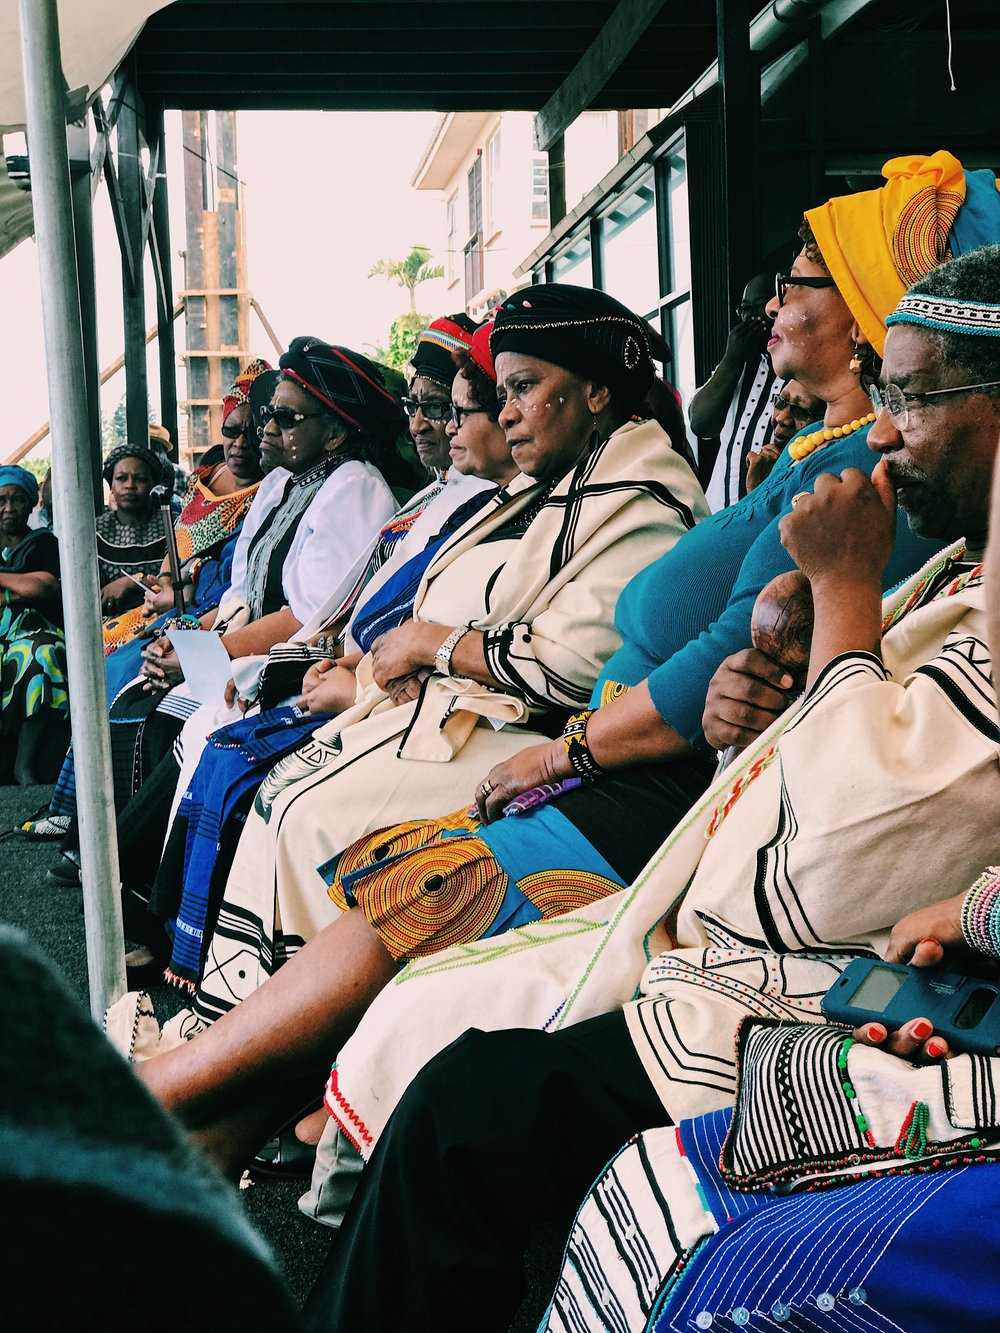 The elders had a front row view of the festivities.